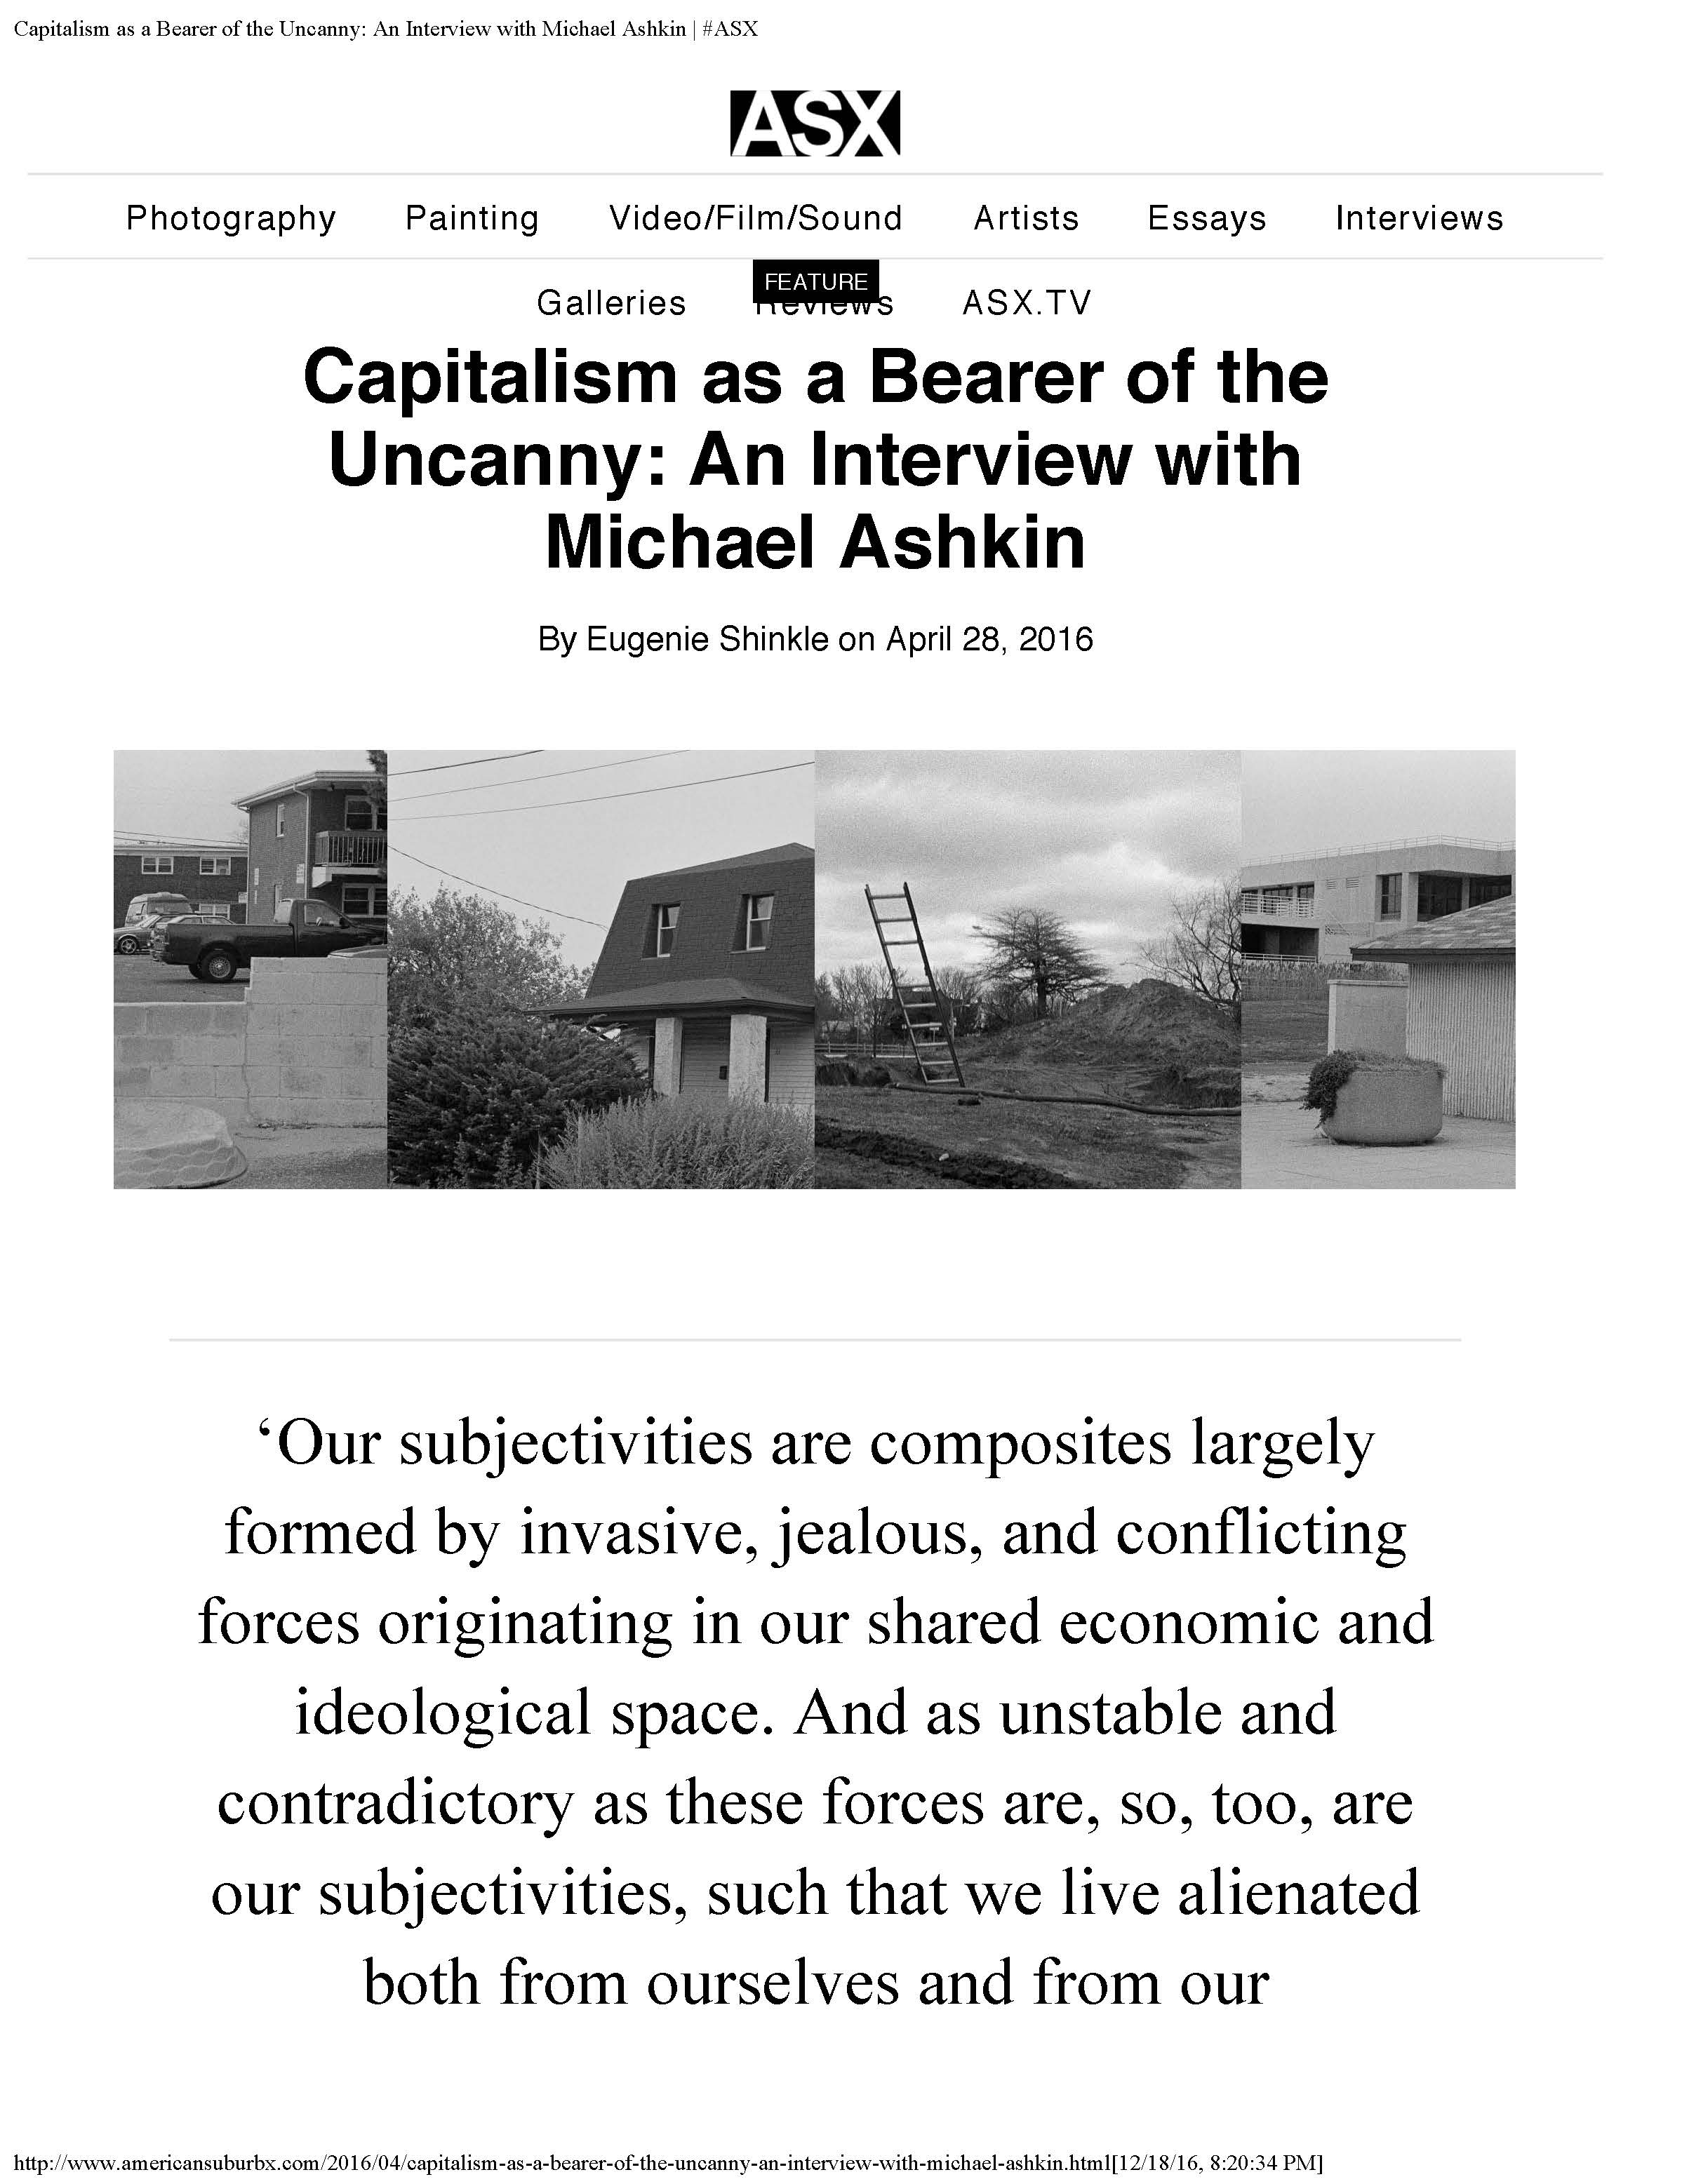 michael ashkin press